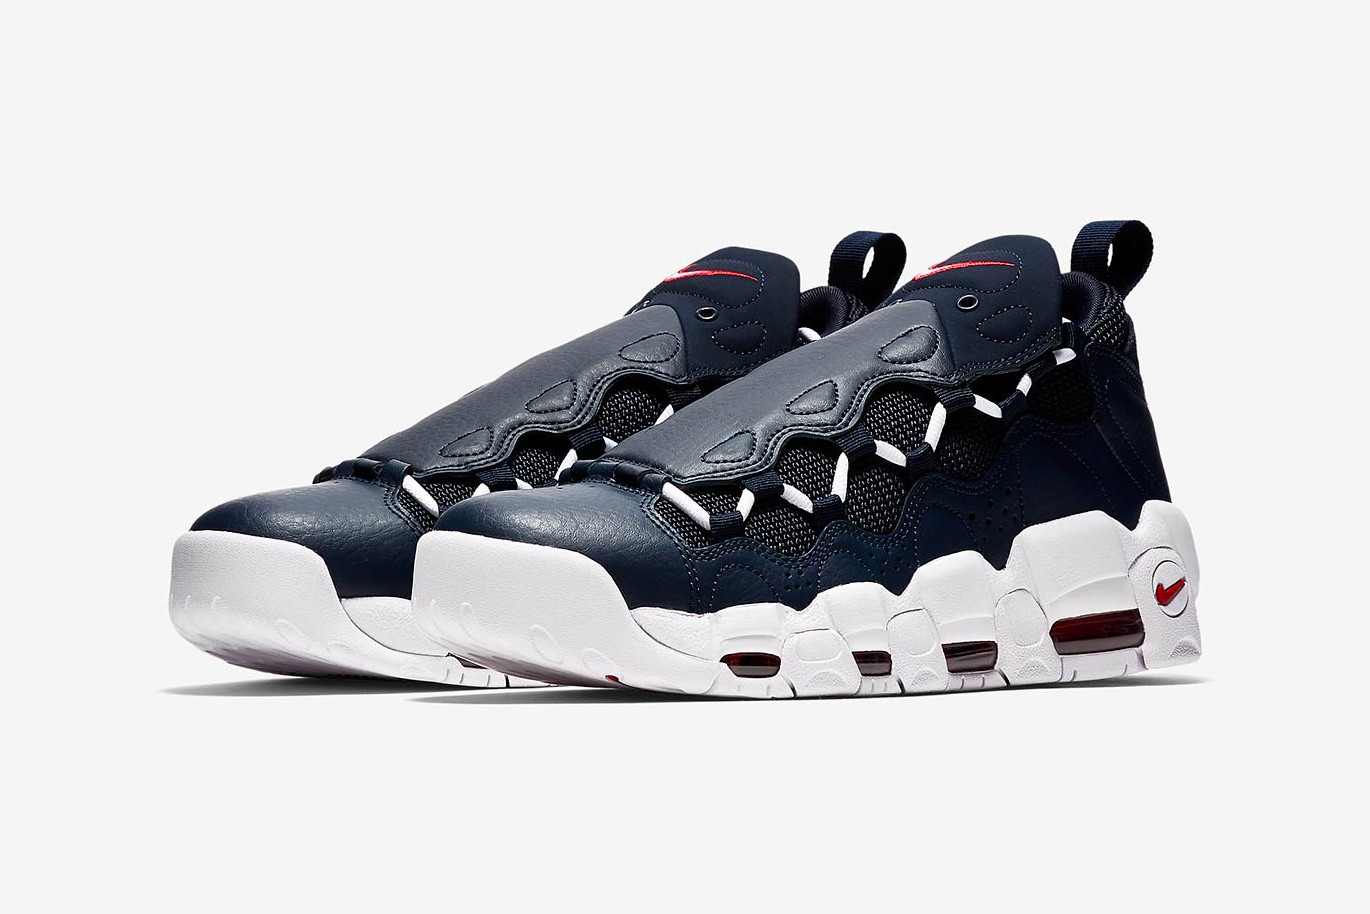 nike-air-more-money-navy-red-release-3 – Copy